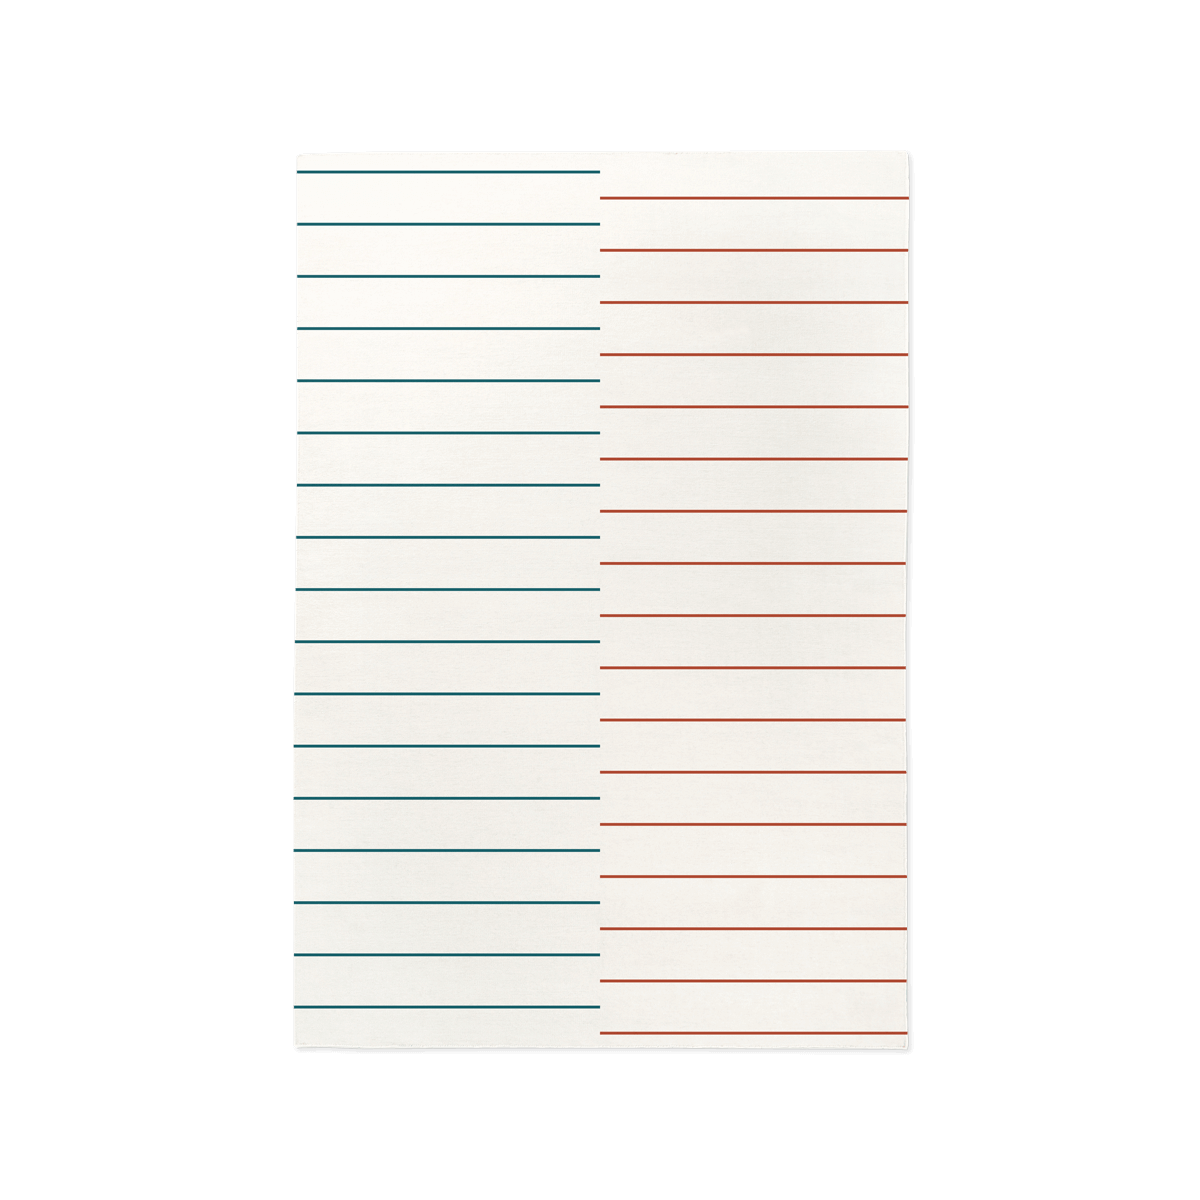 Product image of the flatweave rug Barber in the color Cream. The rug has a striped pattern where the right side is red stripes and the left is blue.